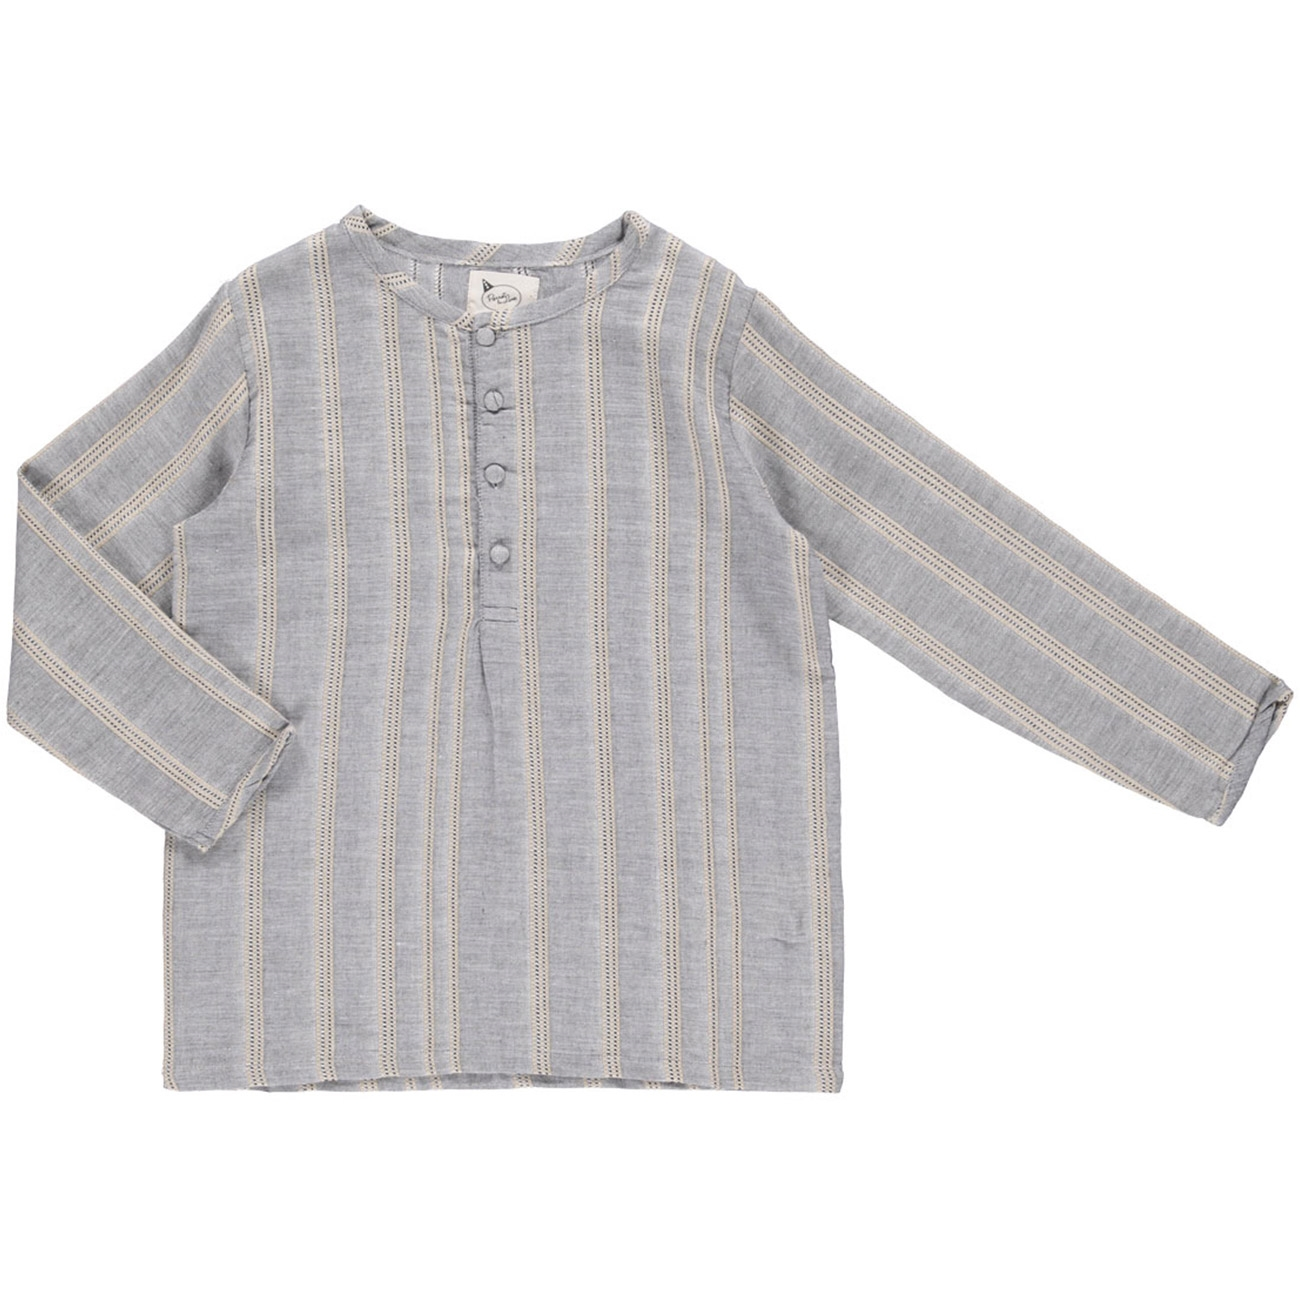 pierrot-la-lune-liam-shirt-skjorte-grey-woven-stripes